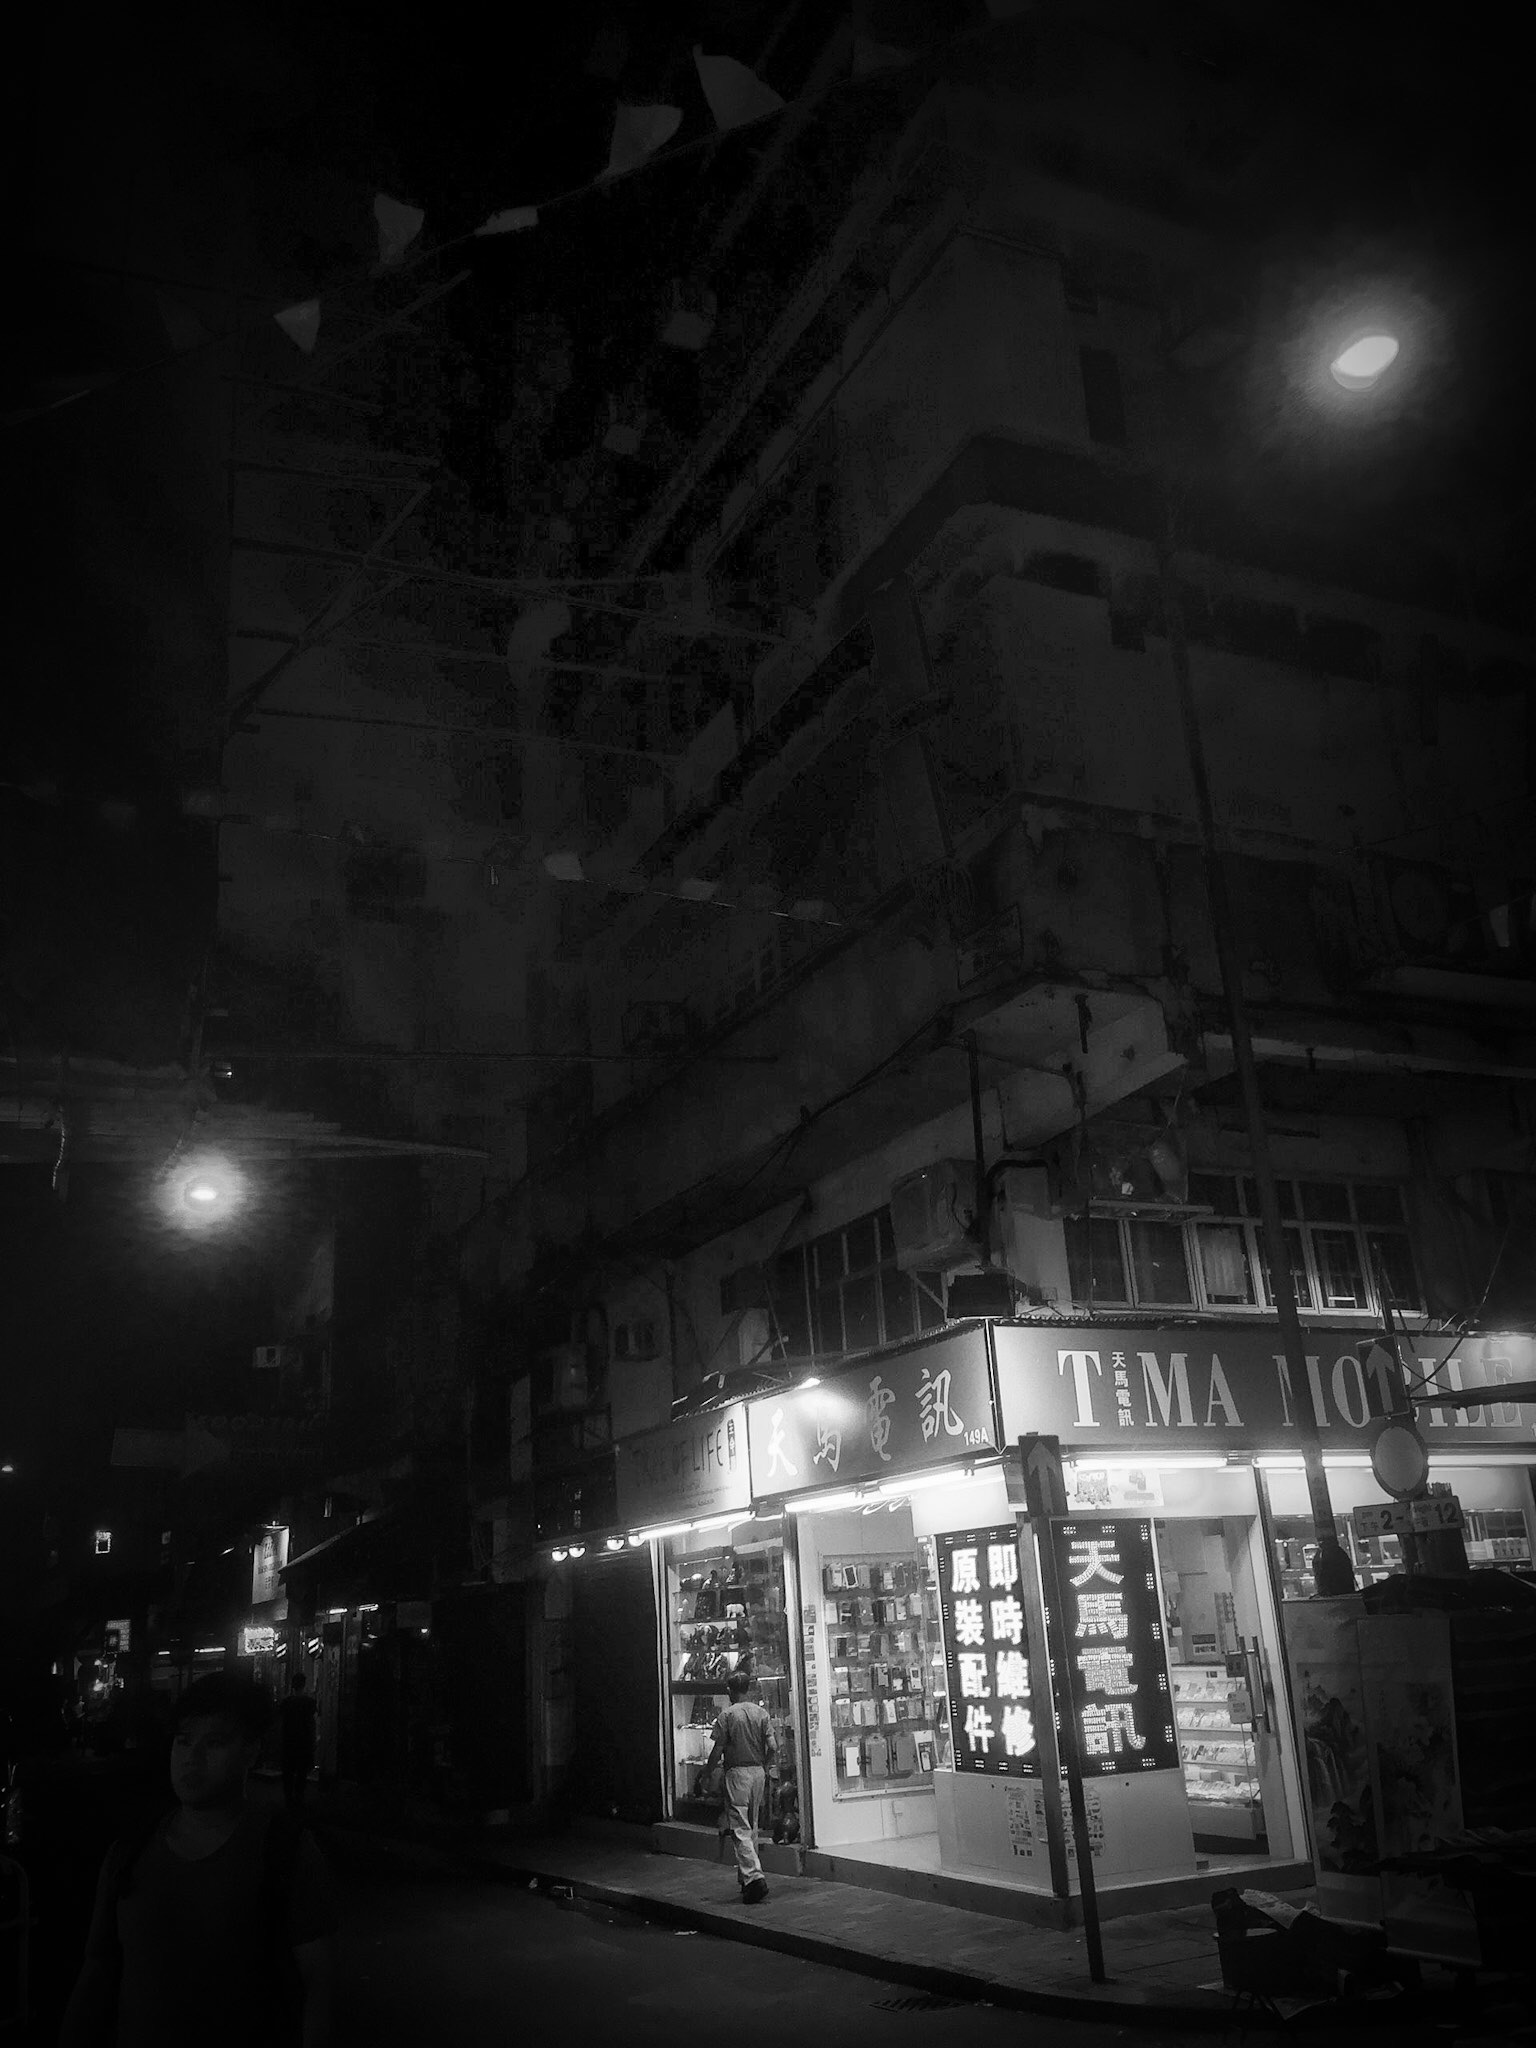 ghost-stories---iphone-6-shot-and-edited-hong-kong-china-2015_20984622909_o.jpg